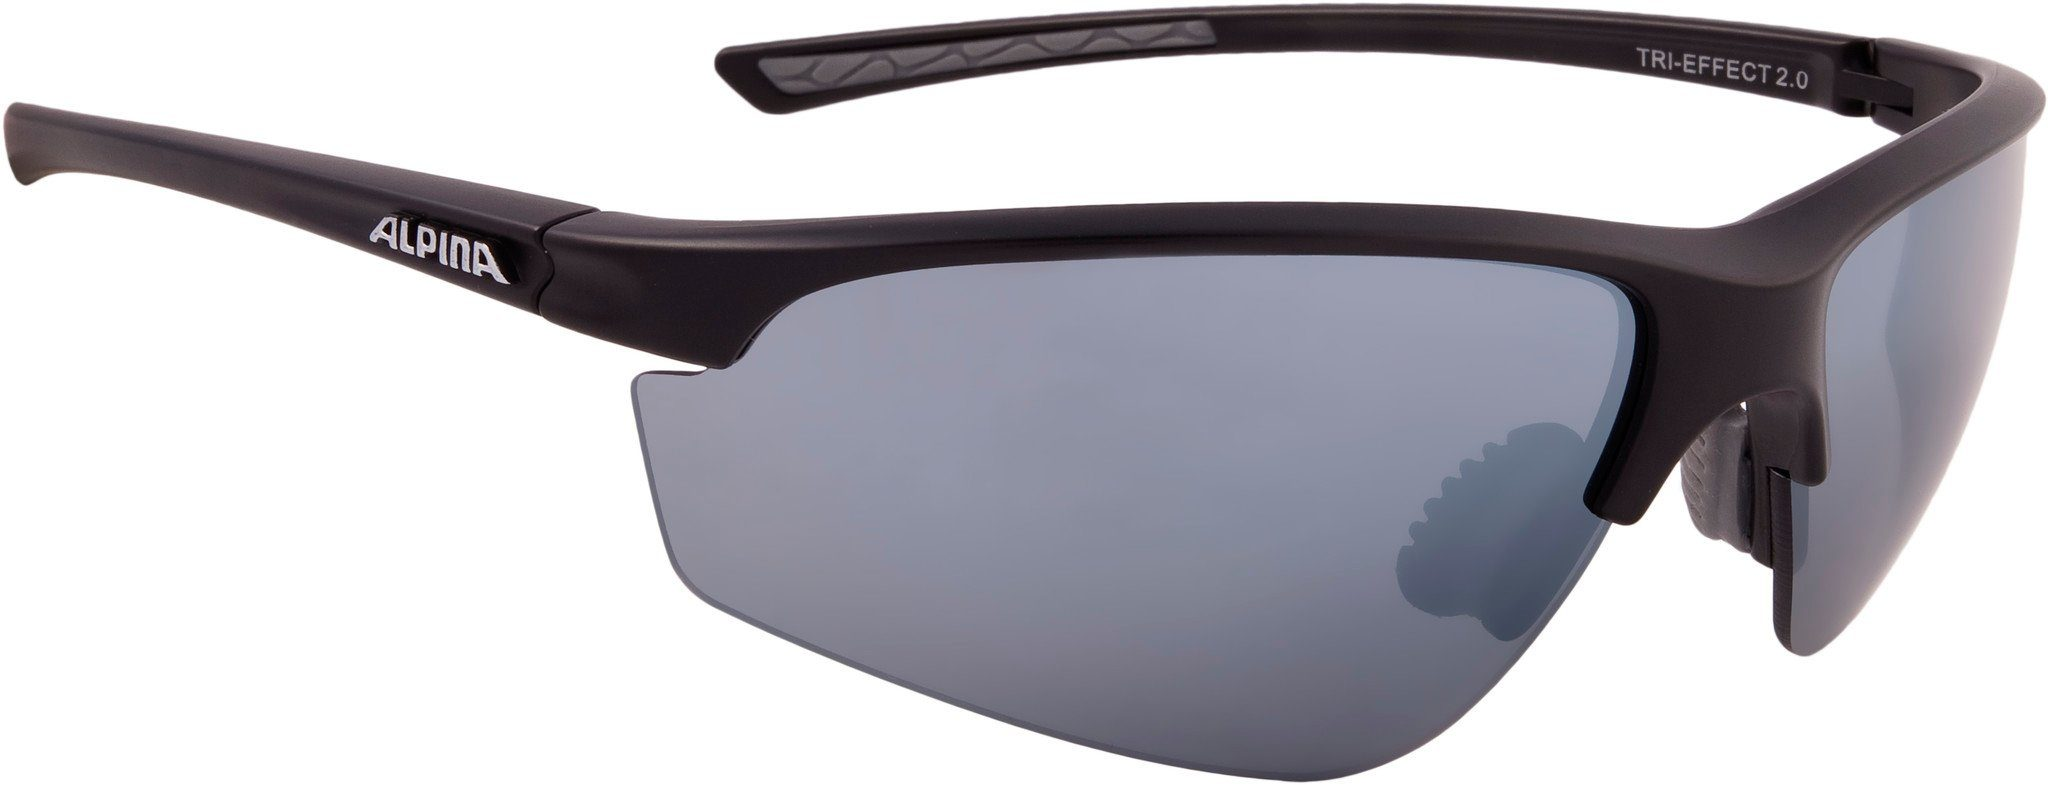 Alpina Sports Sportbrille »Tri-Effect 2.0 Glasses«